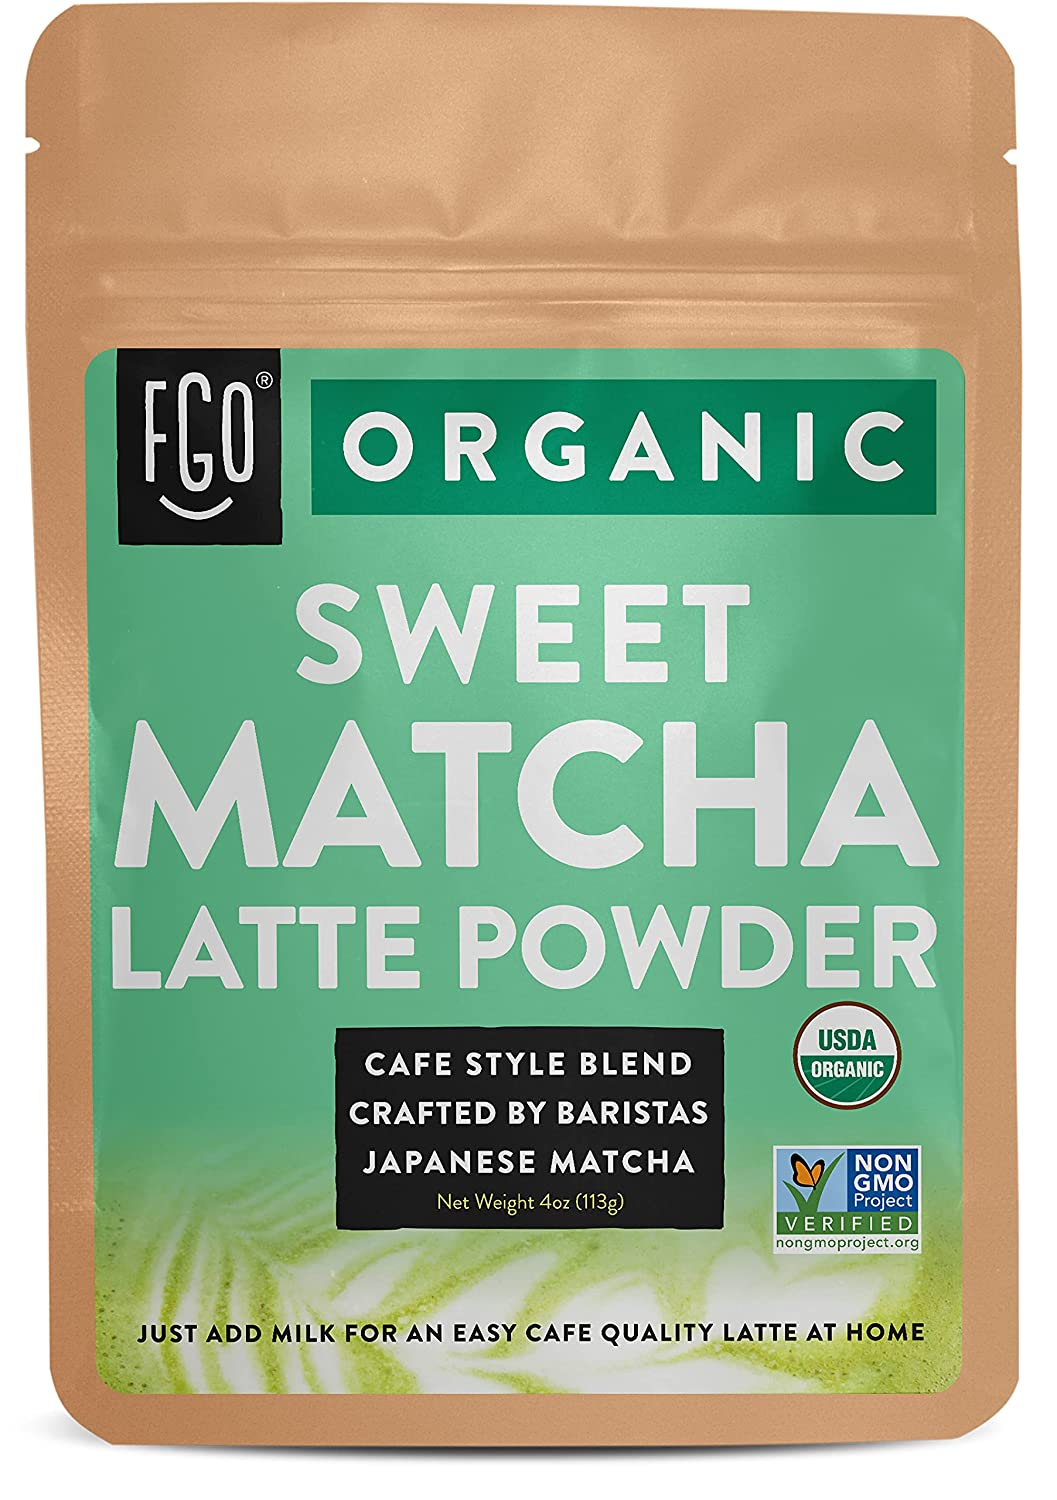 Ranking integrated 1st place Organic Sweet Matcha Latte Powder Baristas by Japane Crafted High quality new